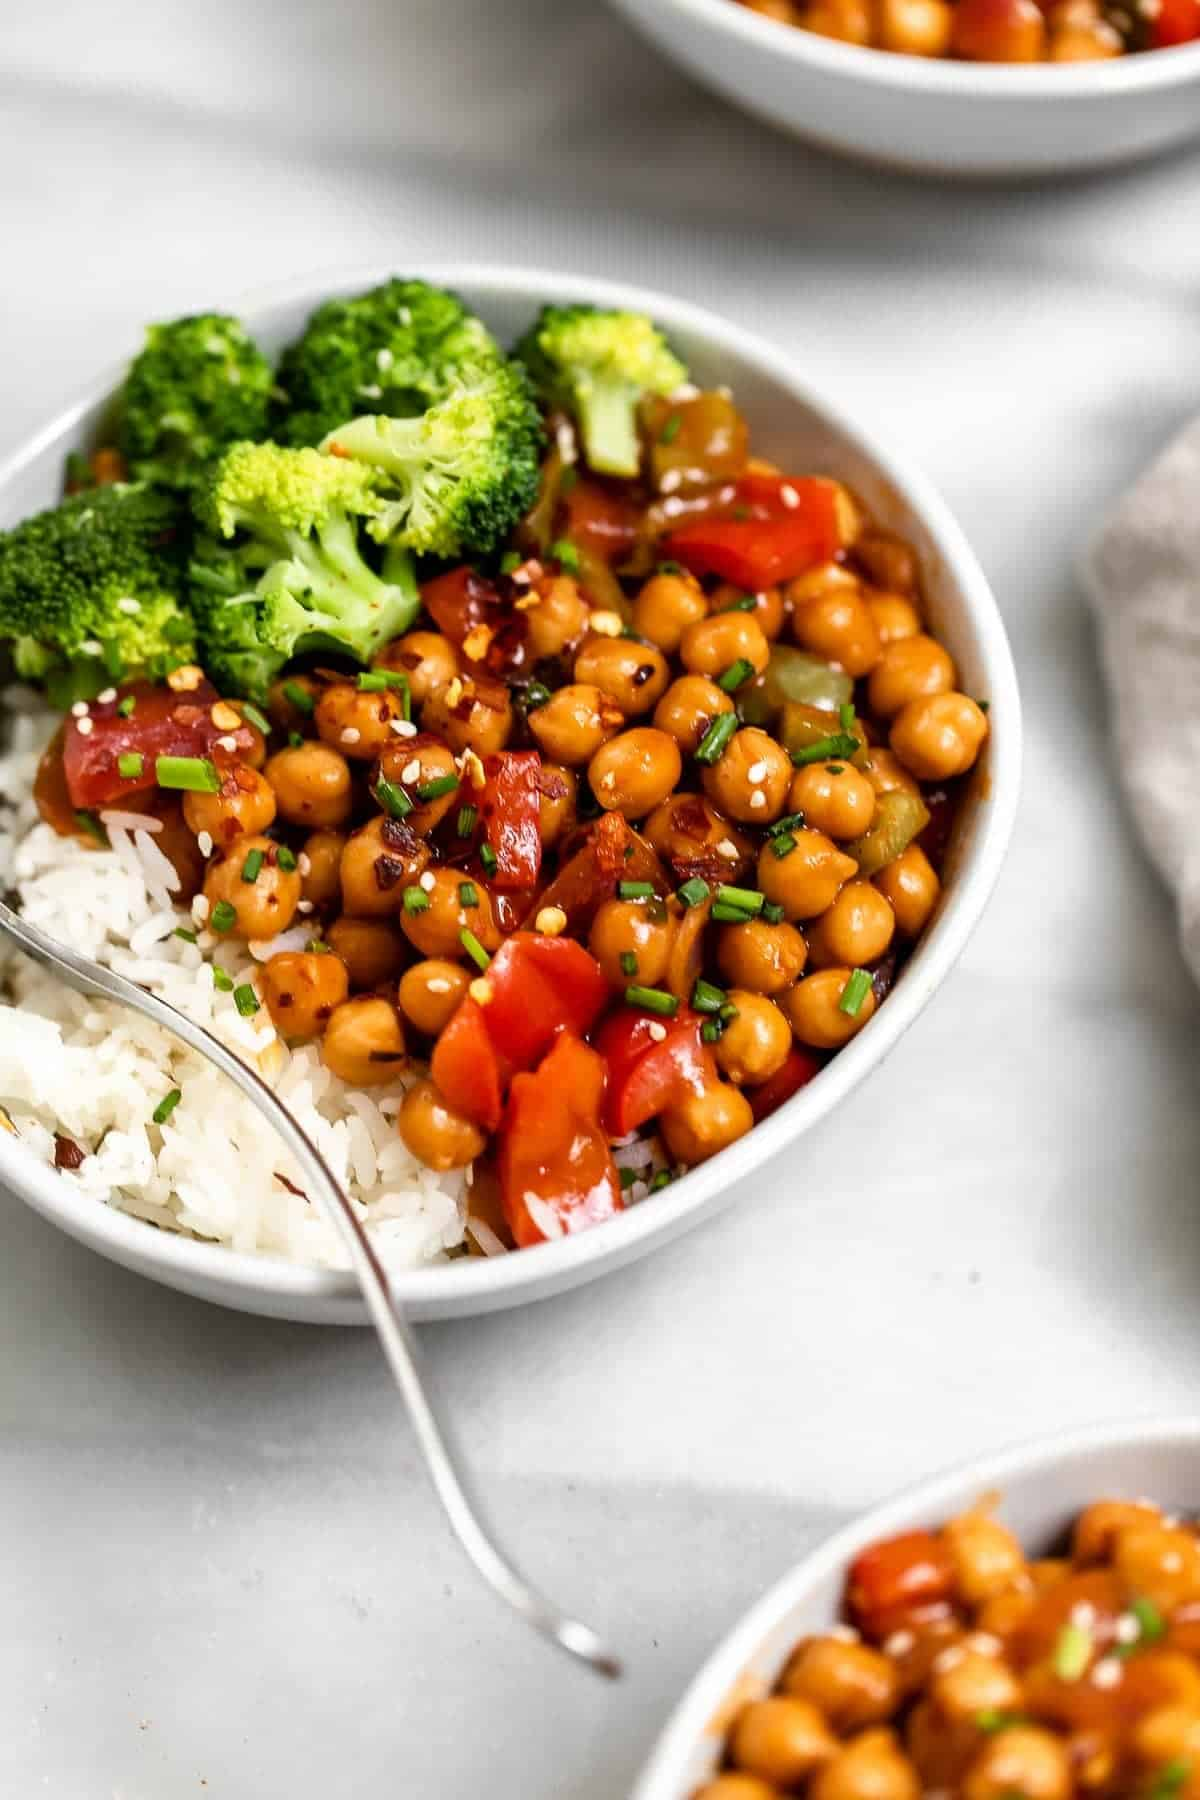 Recipe with steamed broccoli and rice on the side.